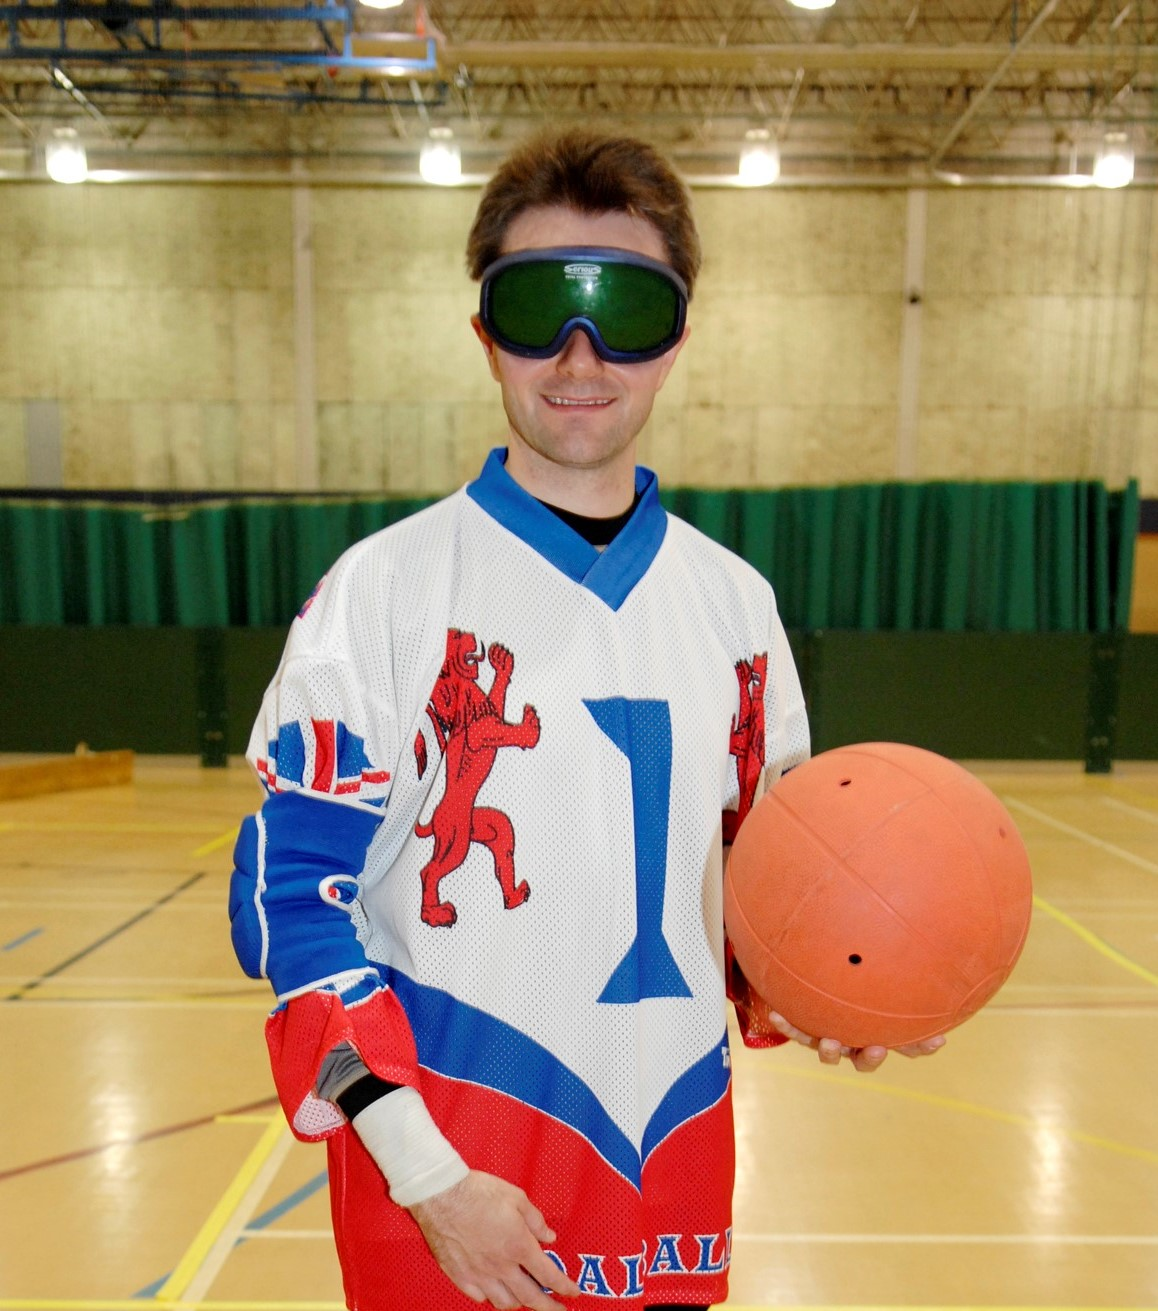 Former GB player James Risdon stood holding a goalball